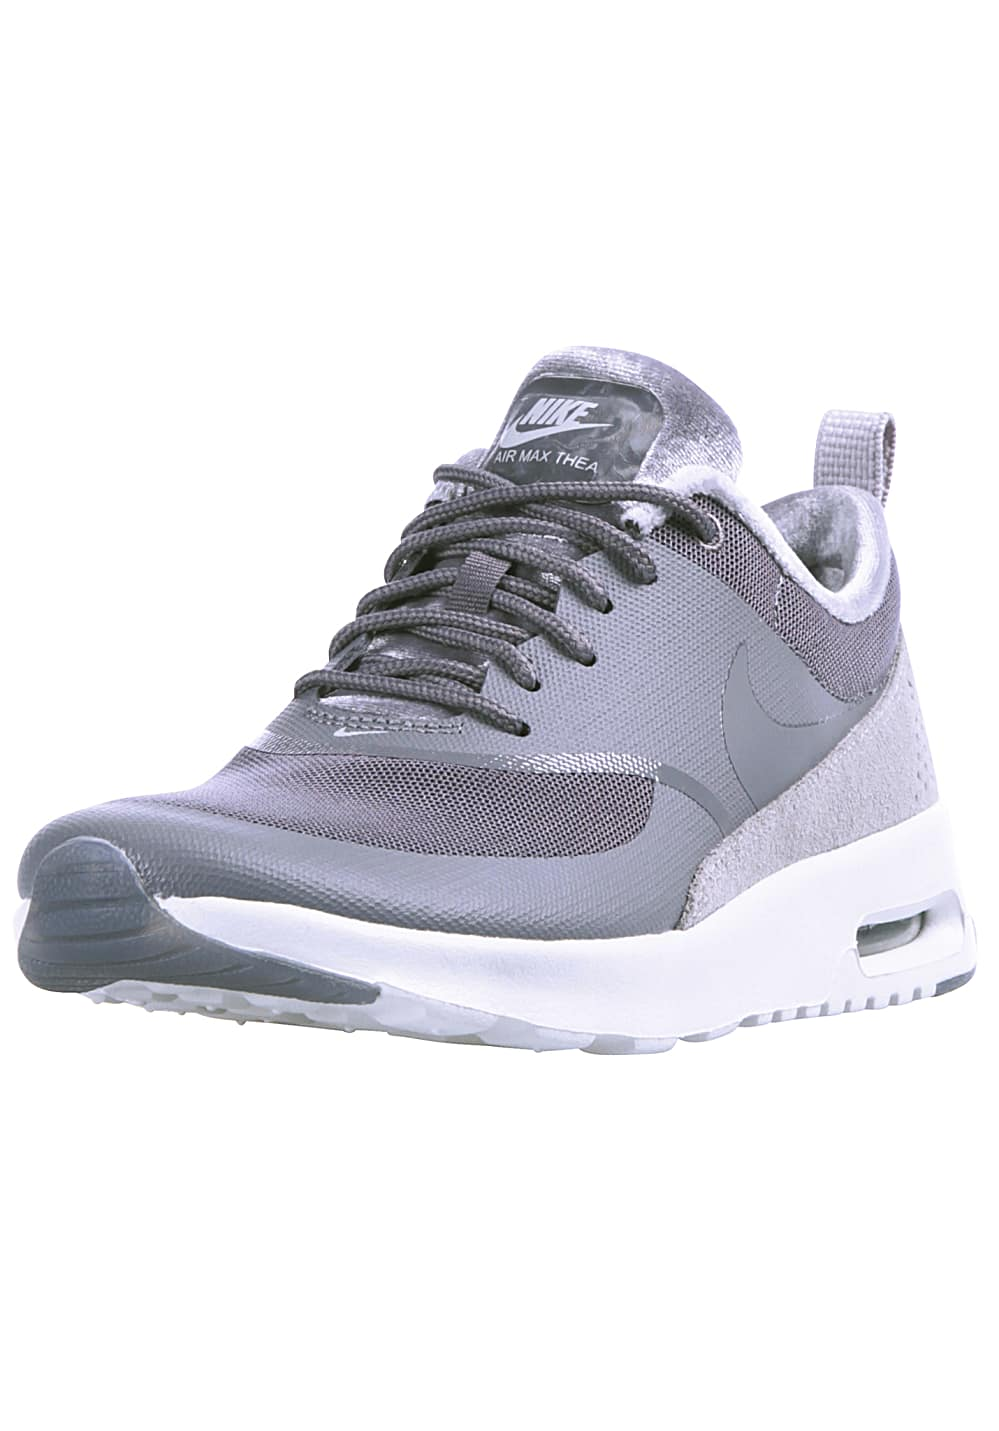 buy online 4483d ab0a4 Next. -20%. NIKE SPORTSWEAR. Air Max Thea LX - Sneakers ...